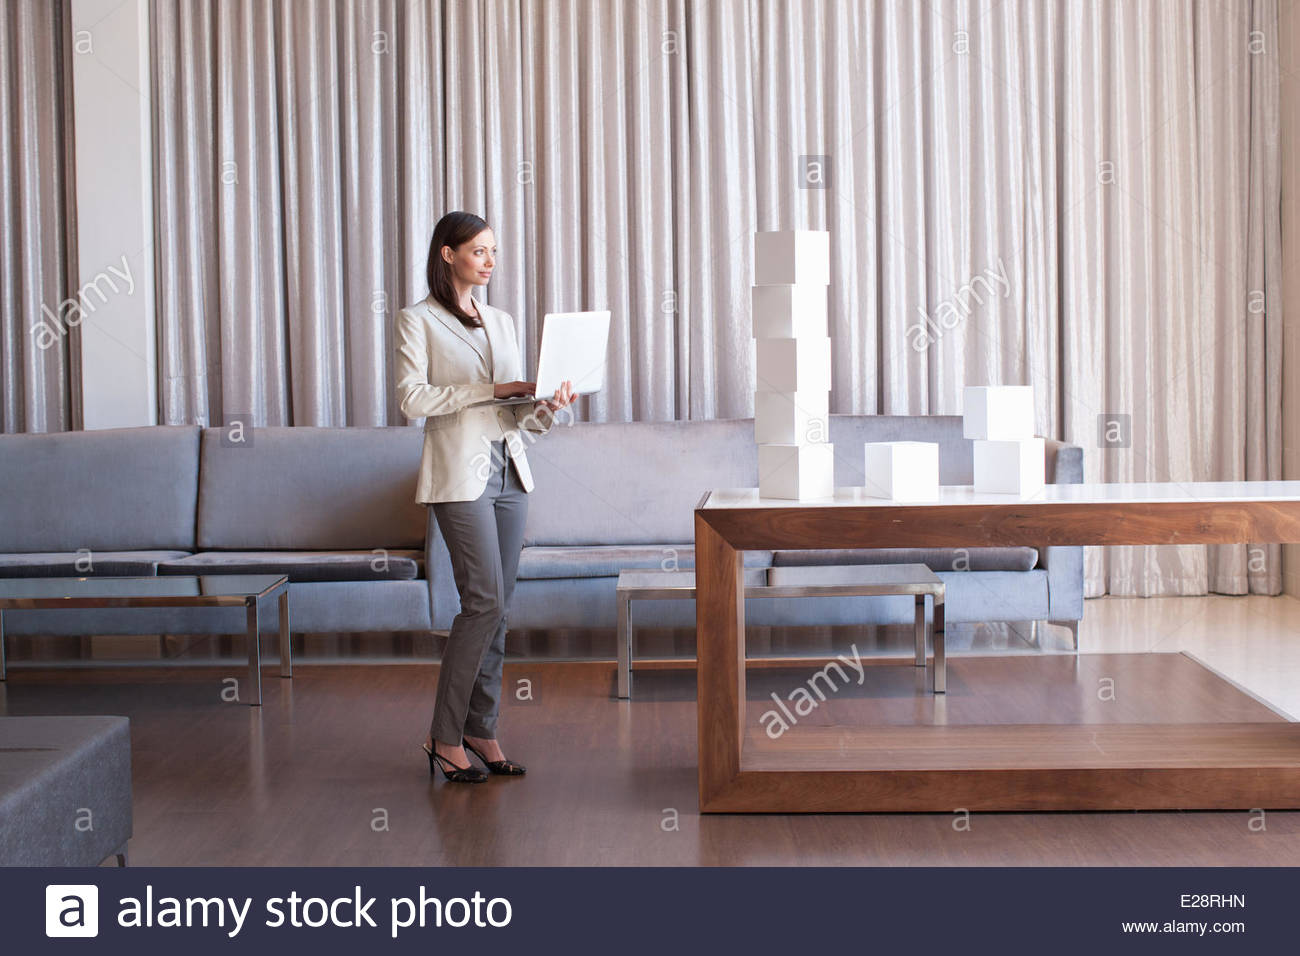 Businesswoman stacking white cubes in hotel lobby - Stock Image